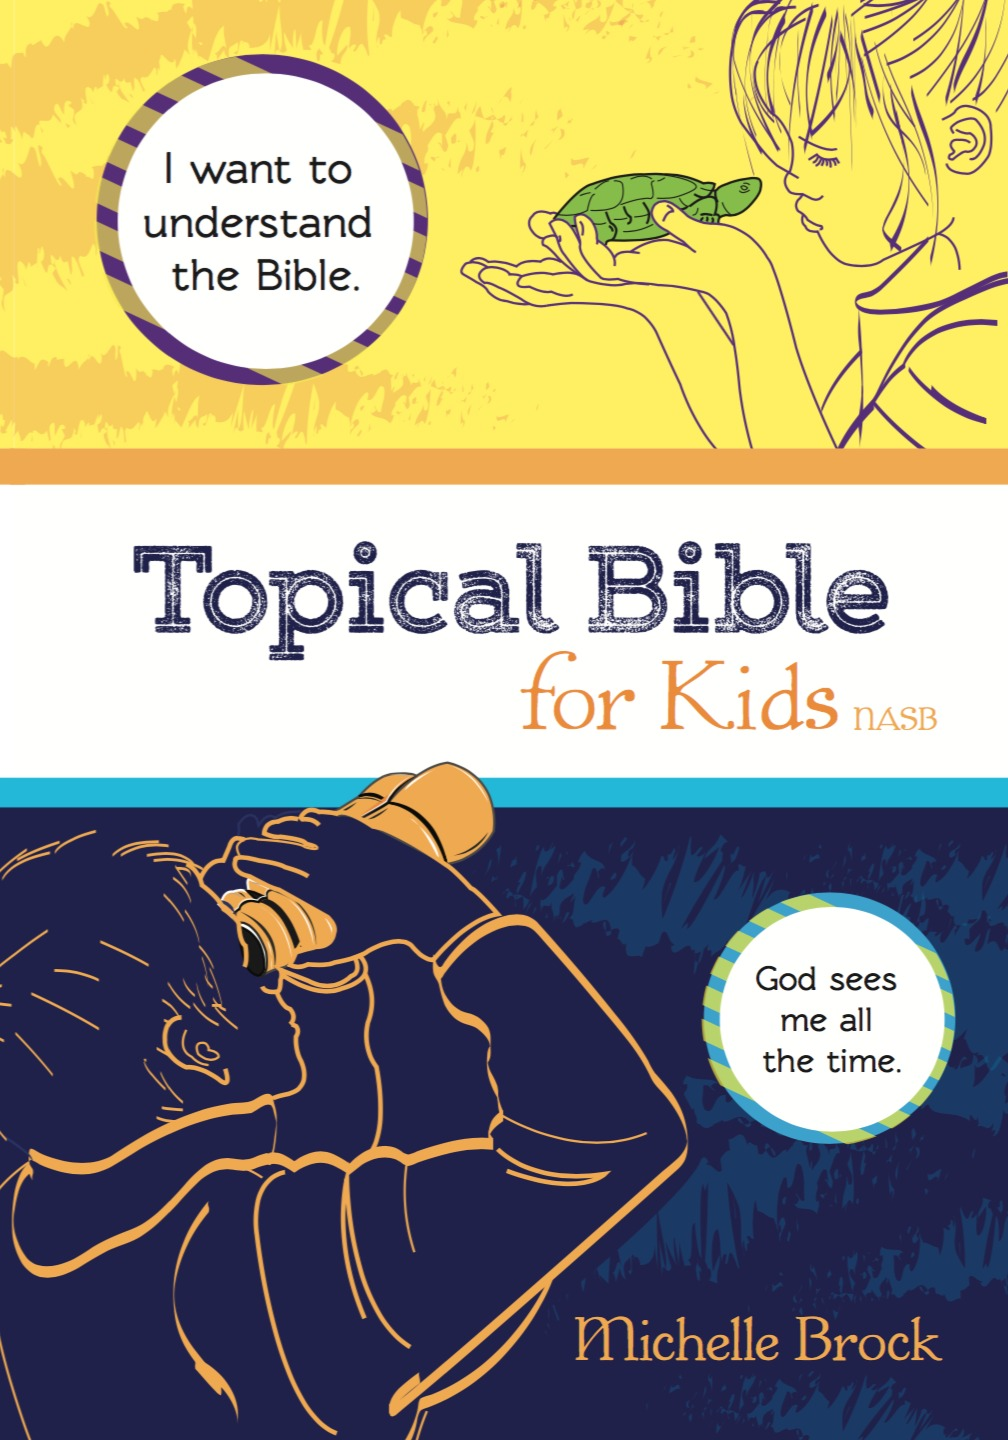 Topical Bible for Kids: Selected from New American Standard Bible Michelle Brock